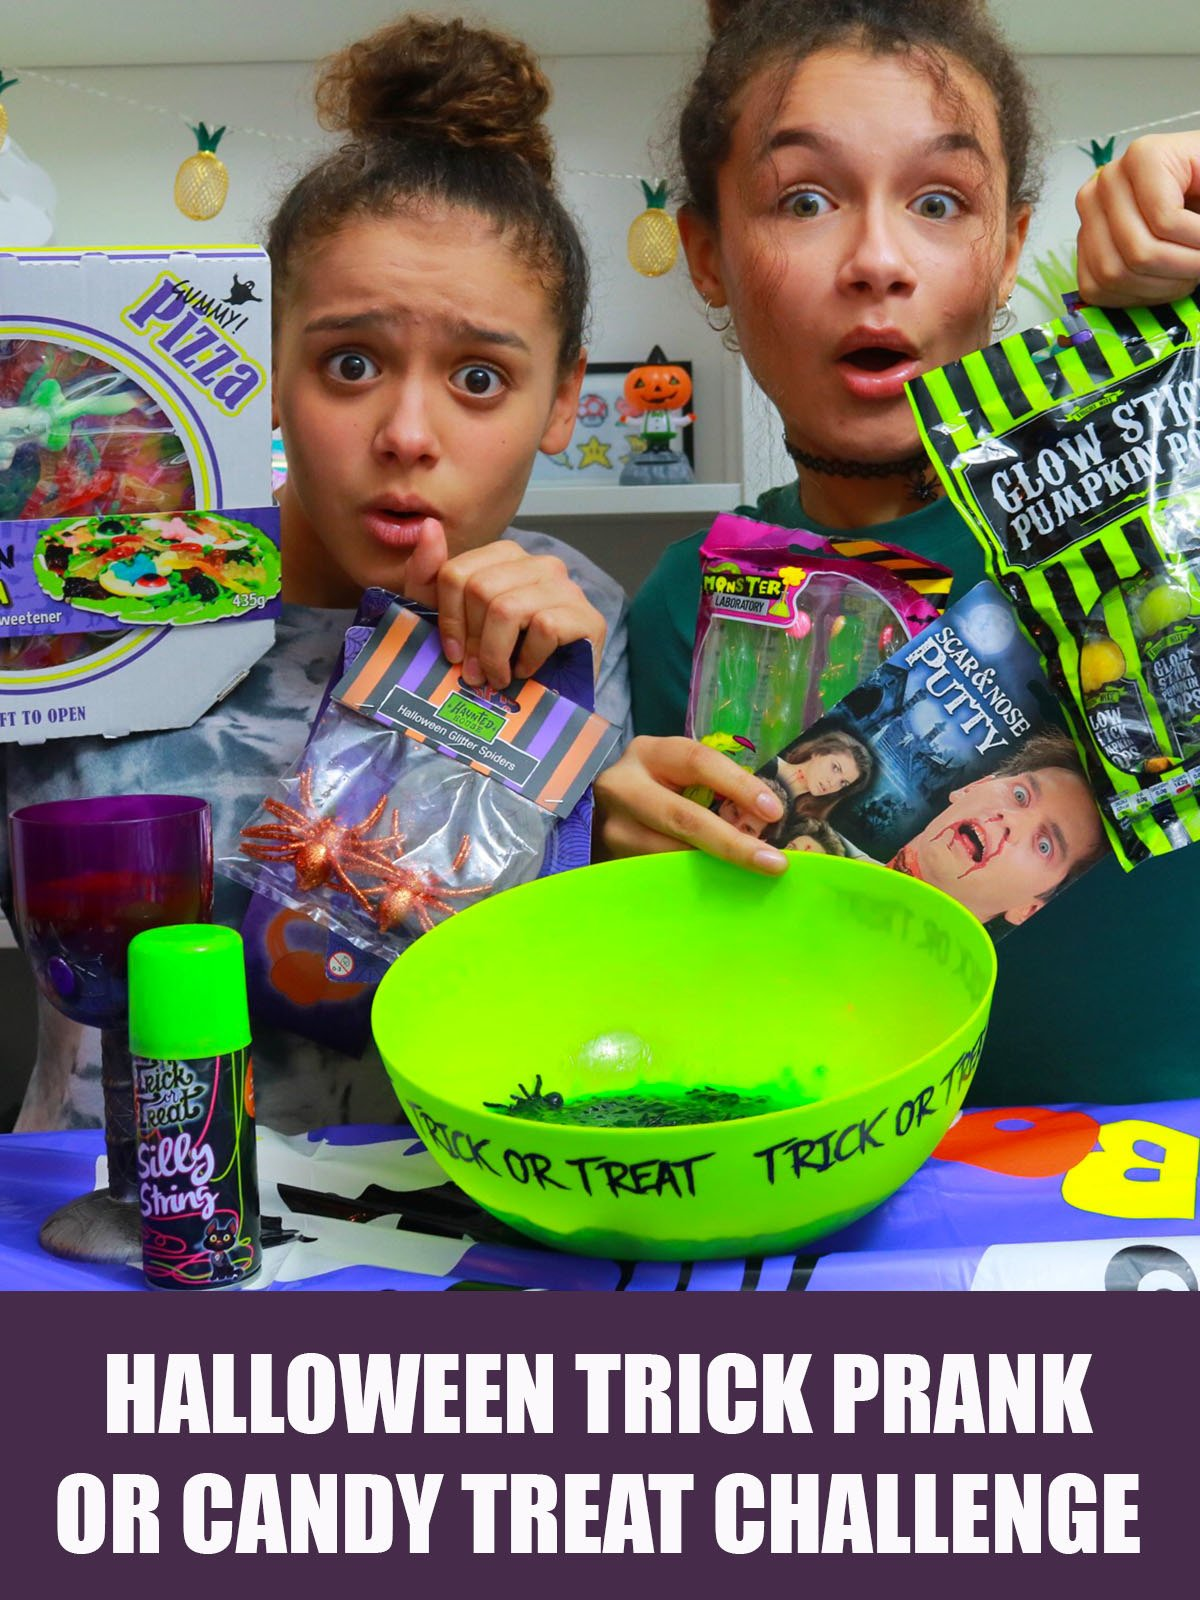 Halloween Trick Prank or Candy Treat Challenge